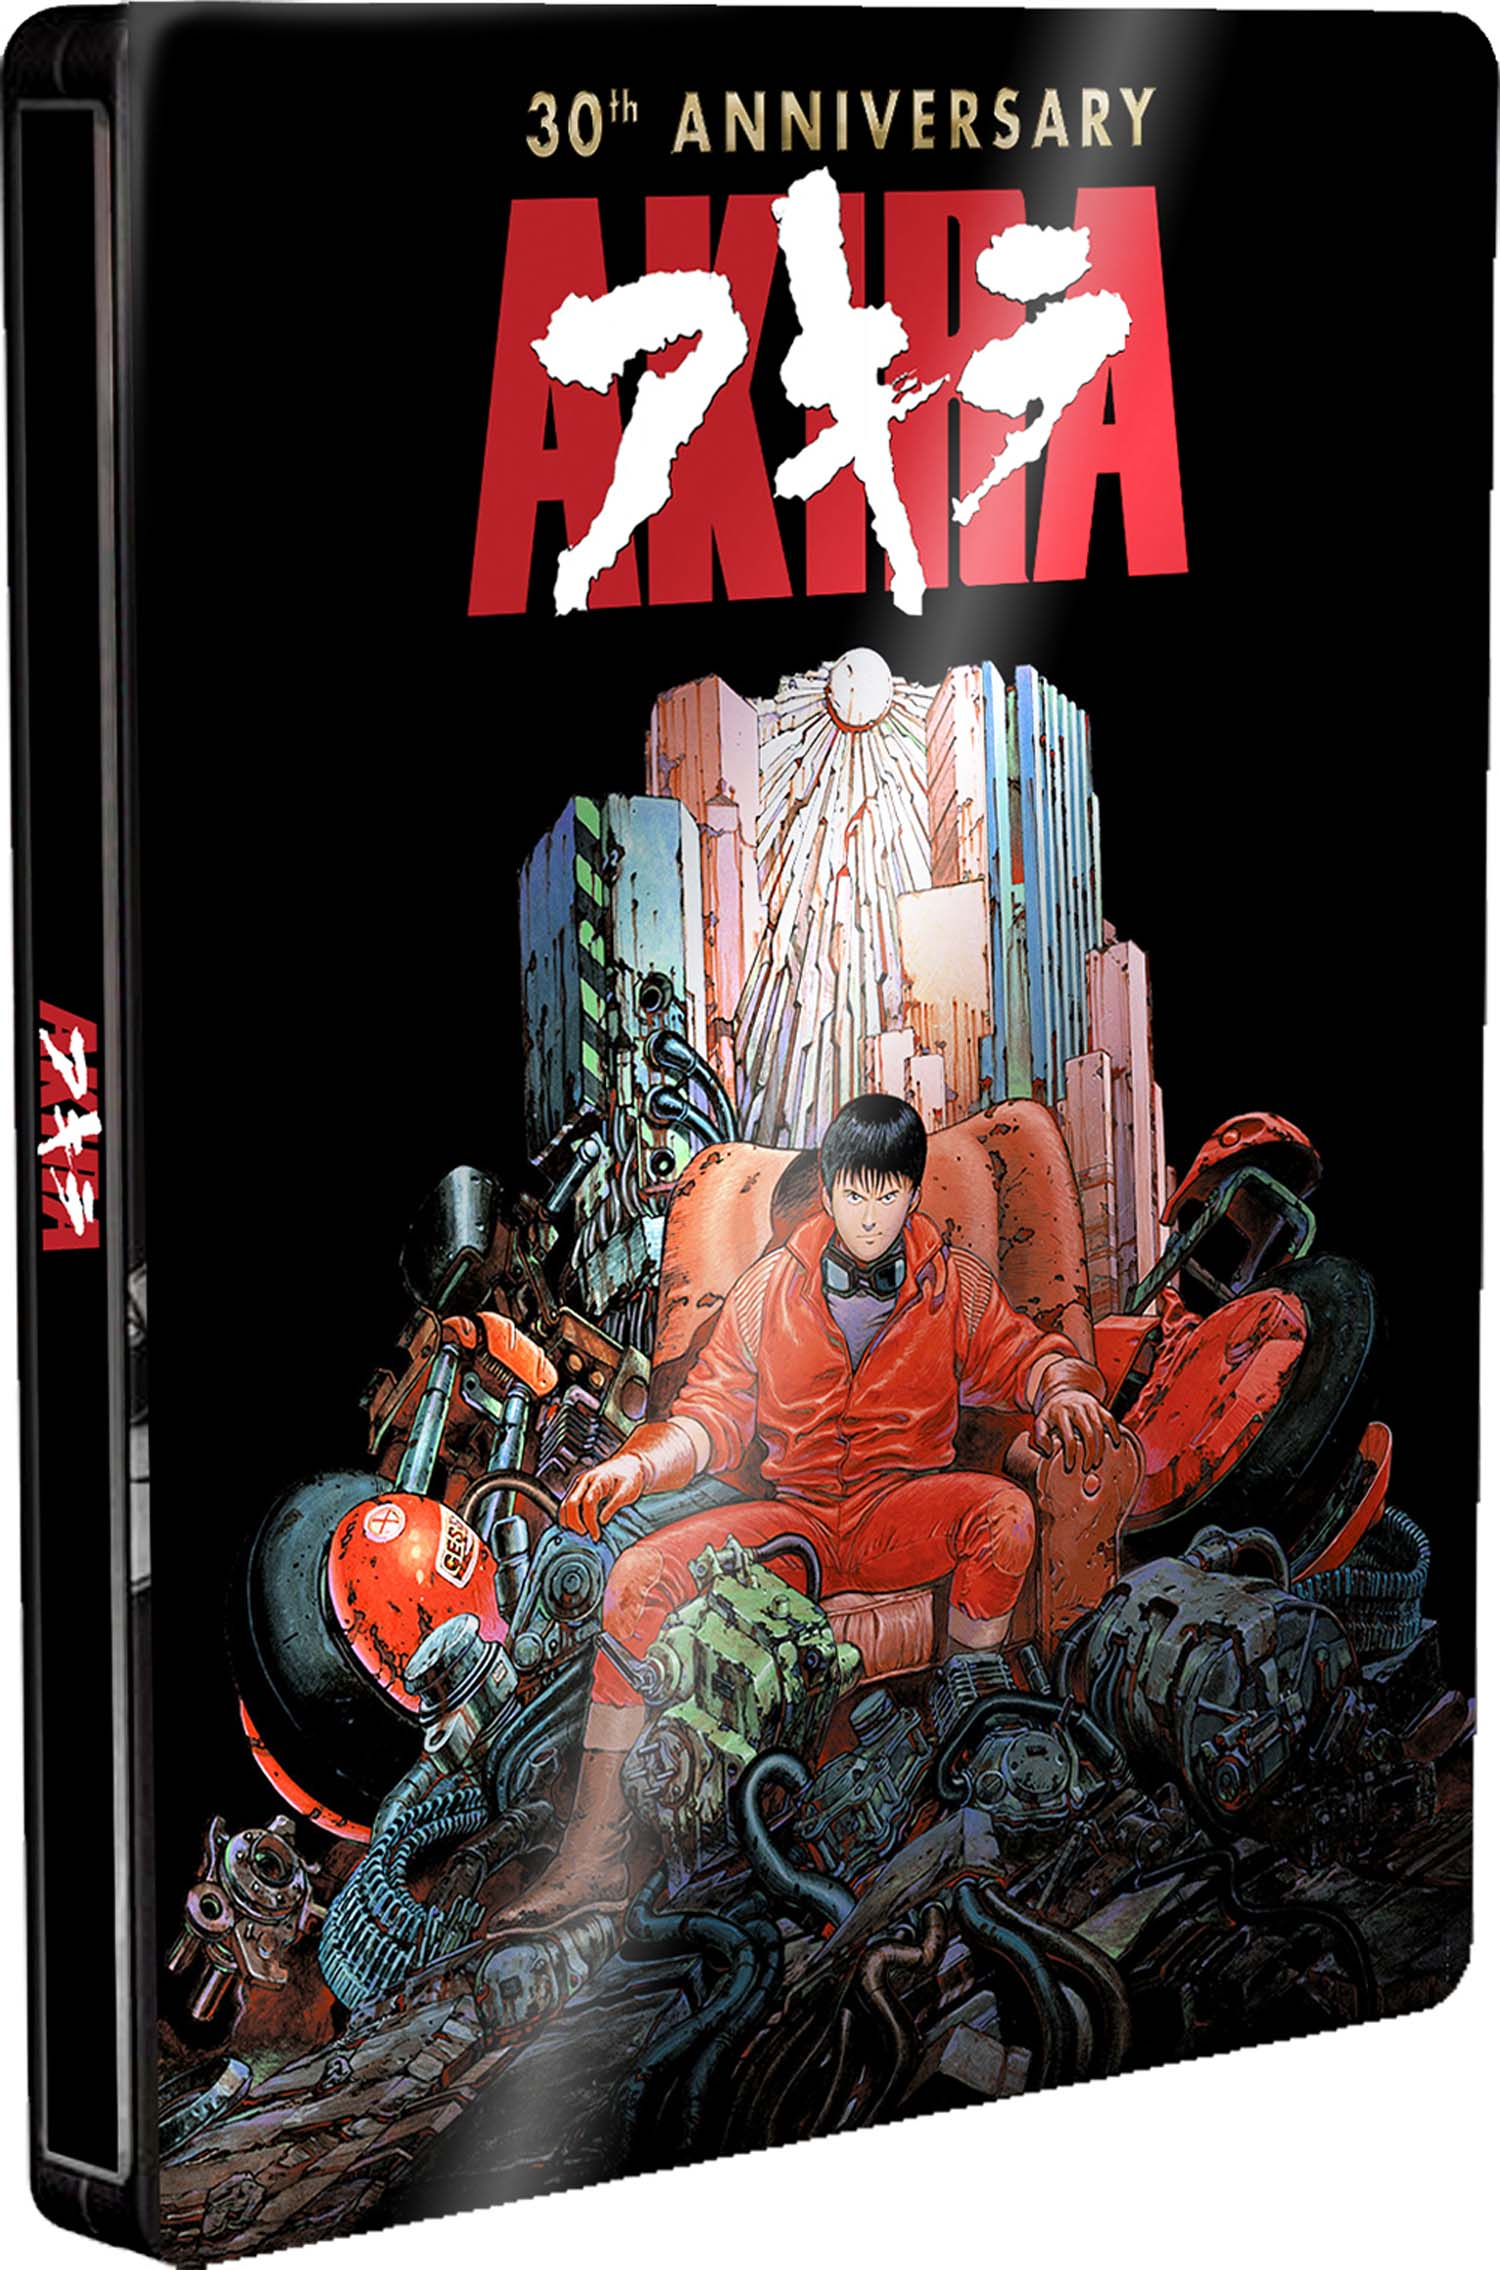 COF.AKIRA - 30TH ANNIVERSARY EDITION STEELBOOK (BLU-RAY+DVD+BOOK